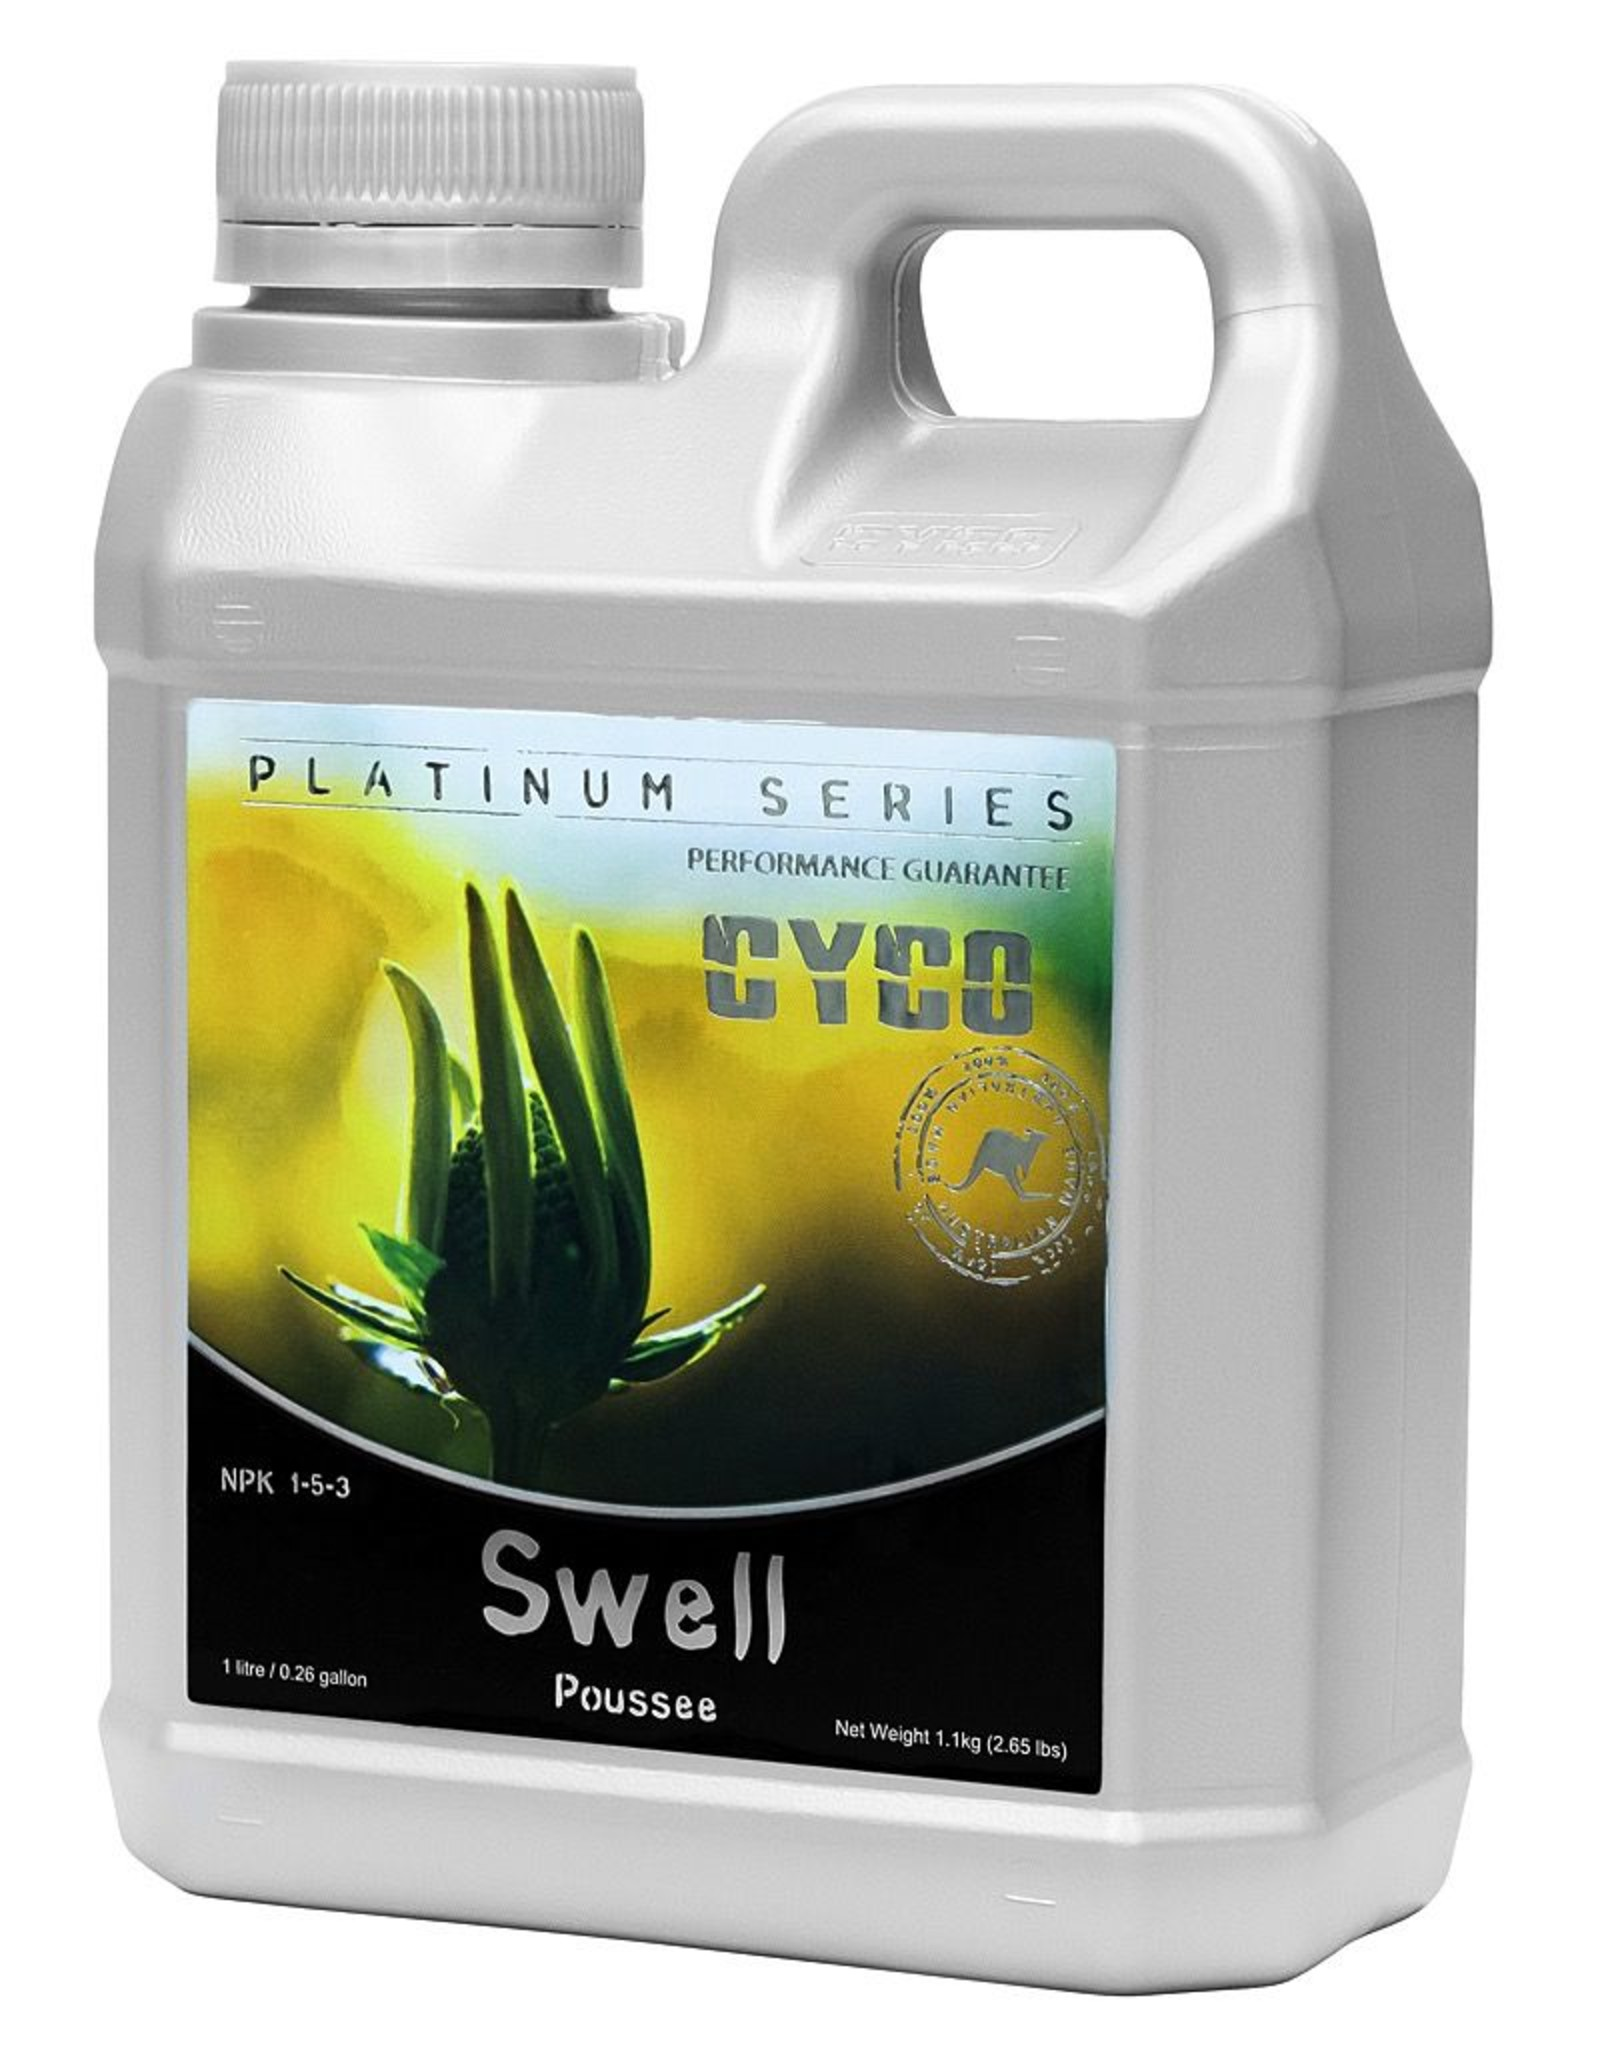 CYCO The phosphorus in Cyco Swell plays an essential part in photosynthesis, helping with plant maturation, increasing growth and encouraging blooms. It also provides a healthy dose of magnesium, which activates plant enzymes needed for robust growth. Swell is